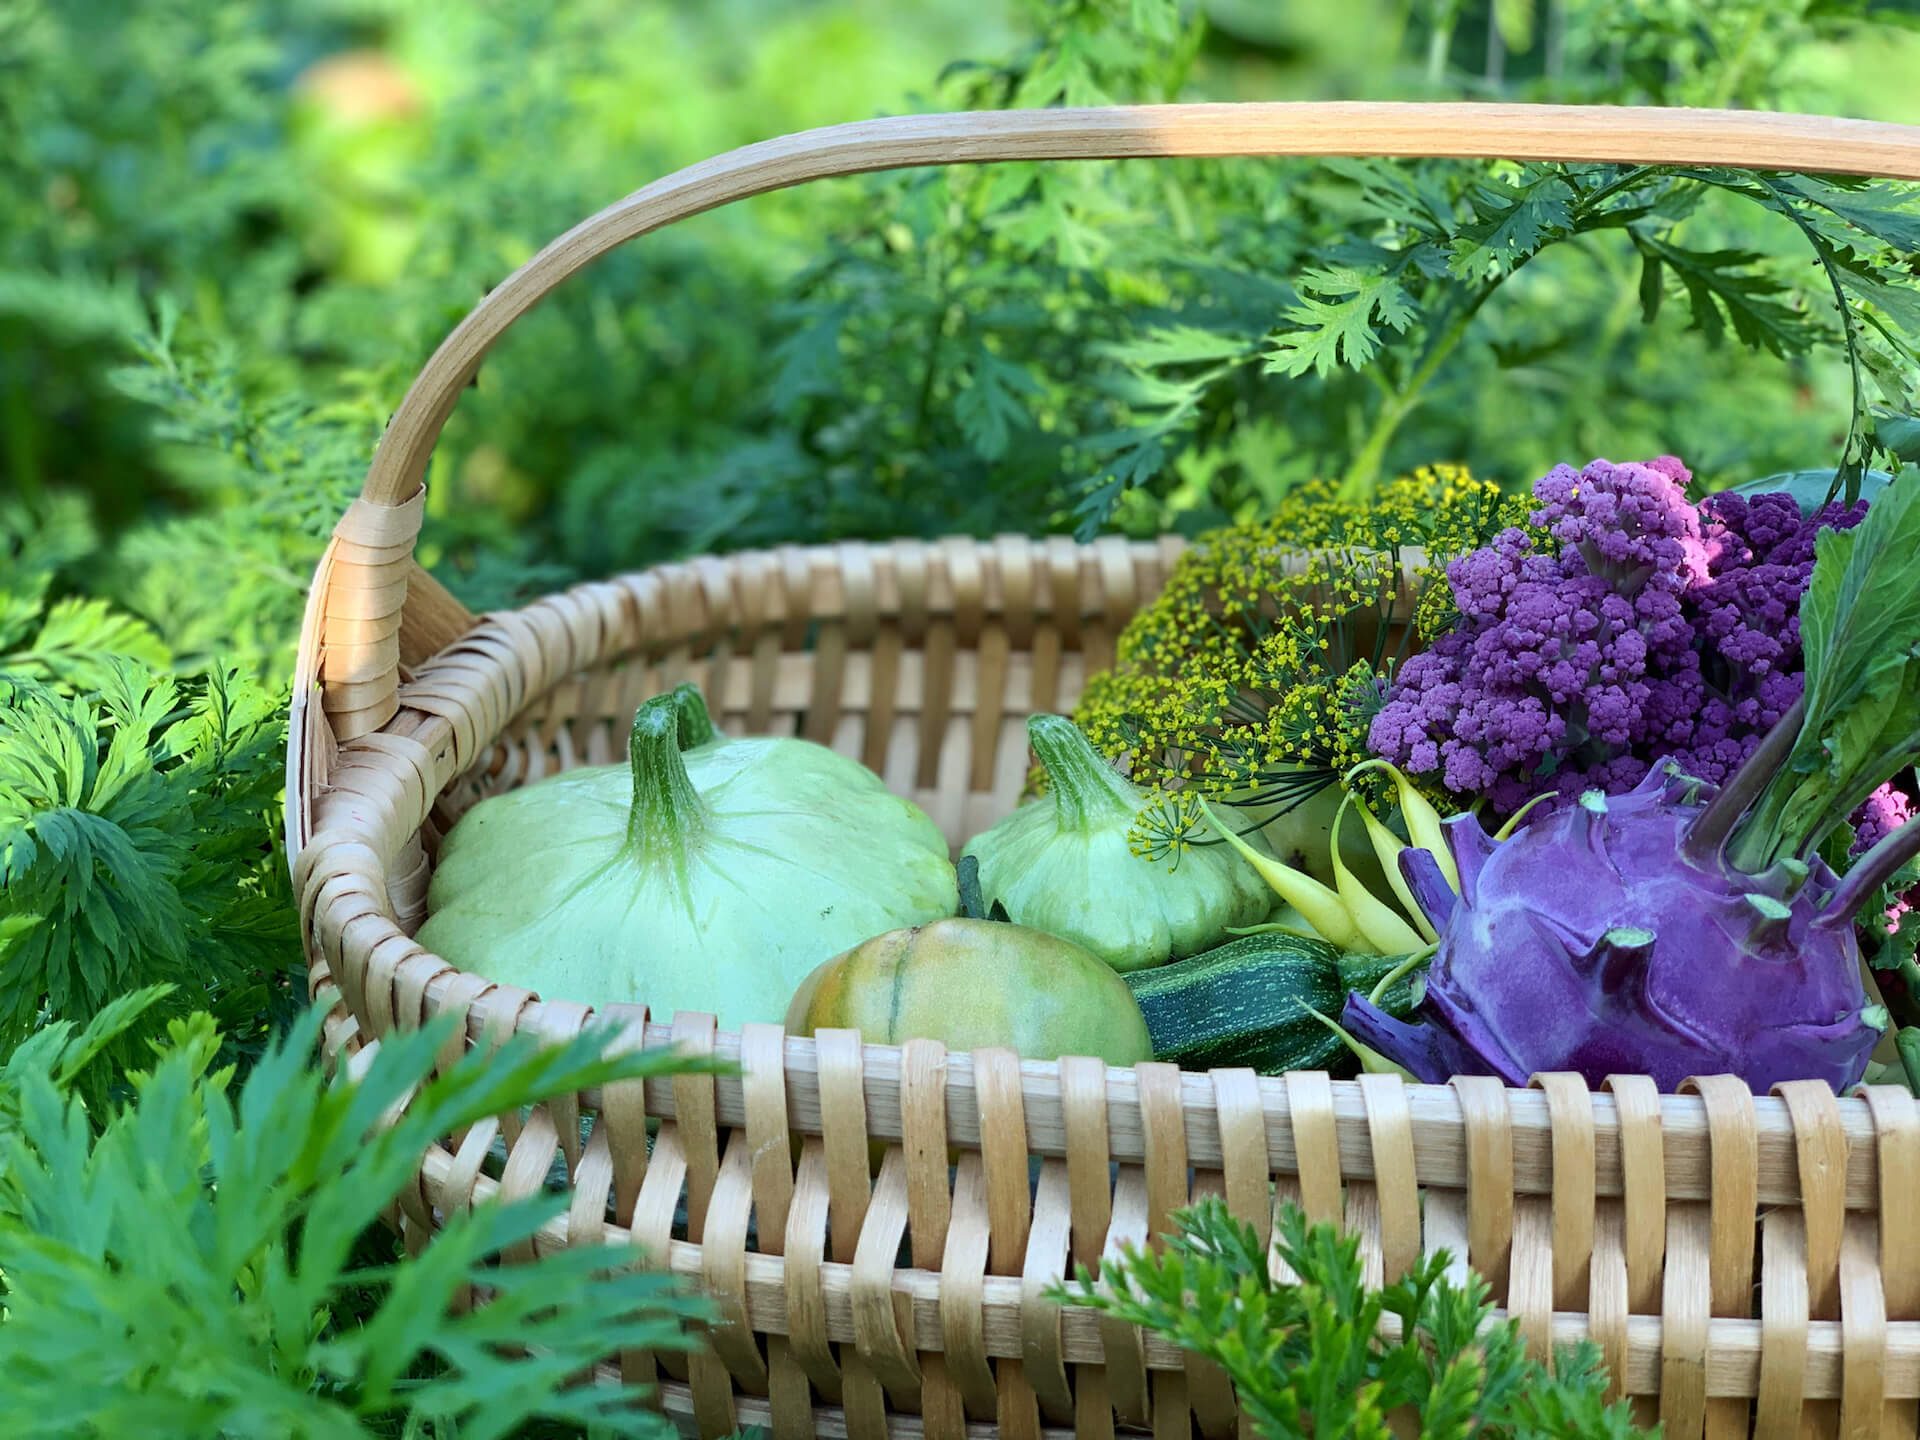 Basket full of garden produce such as purple broccoli, squash, and pumpkins.